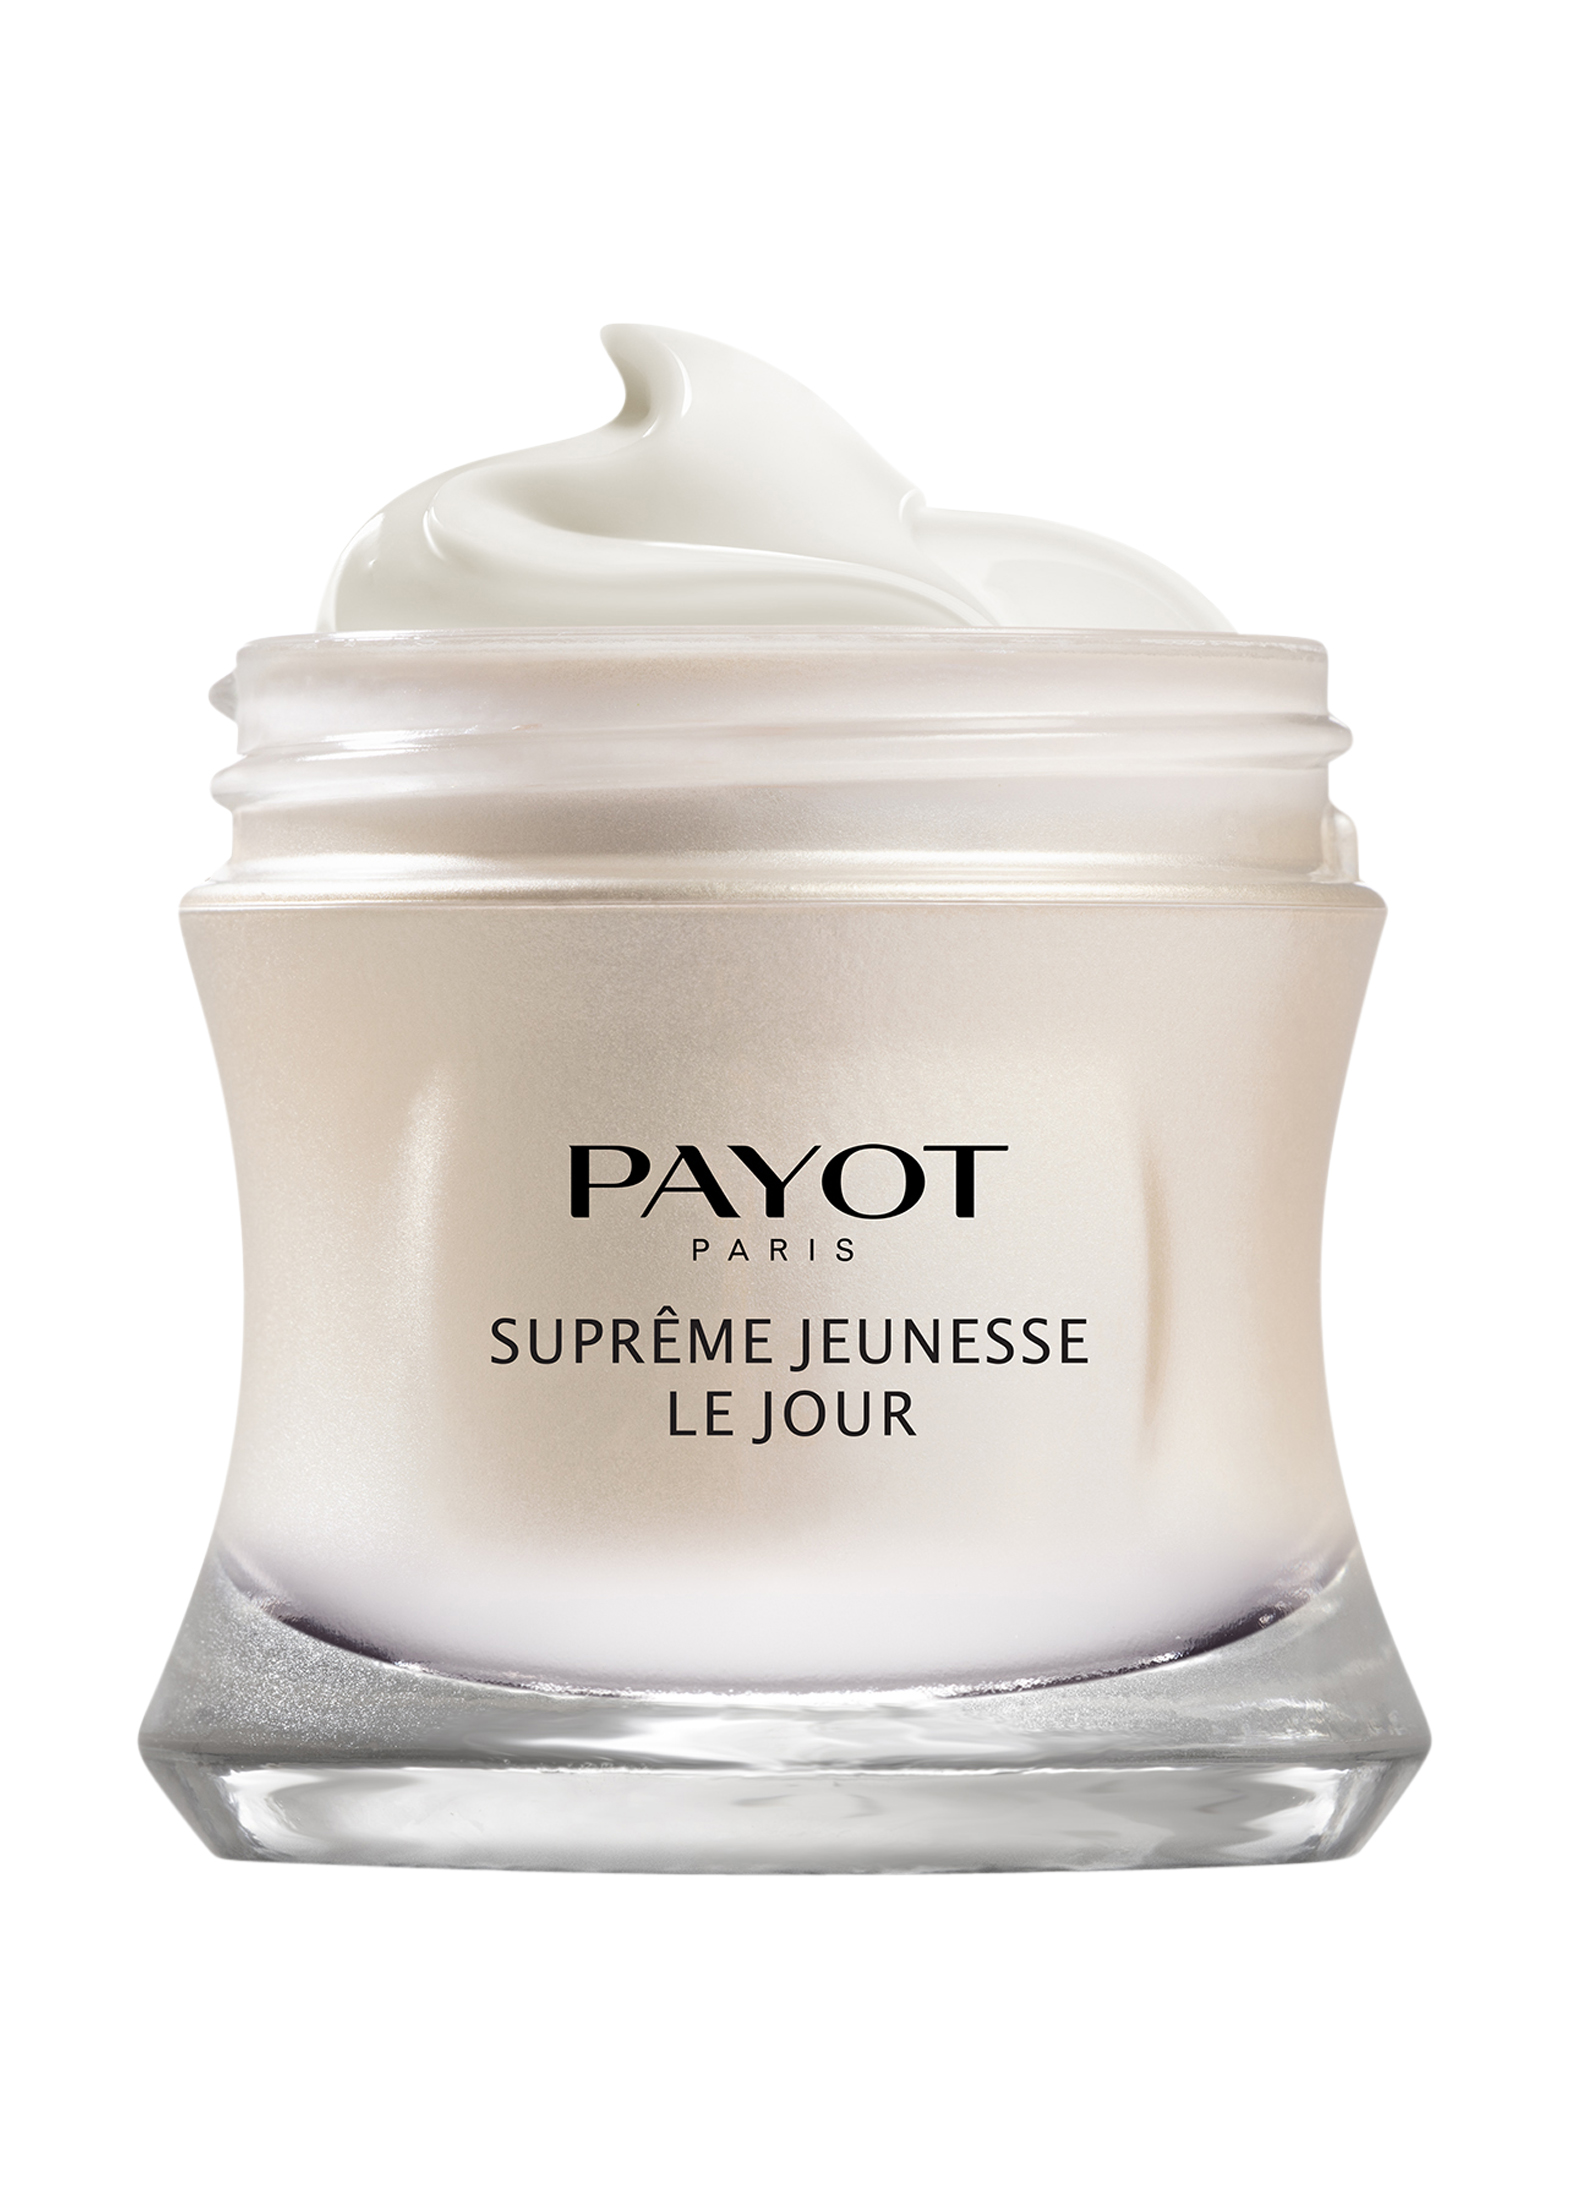 PAYOT, SUPREME JEUNESSE JOUR 50ML image number 1